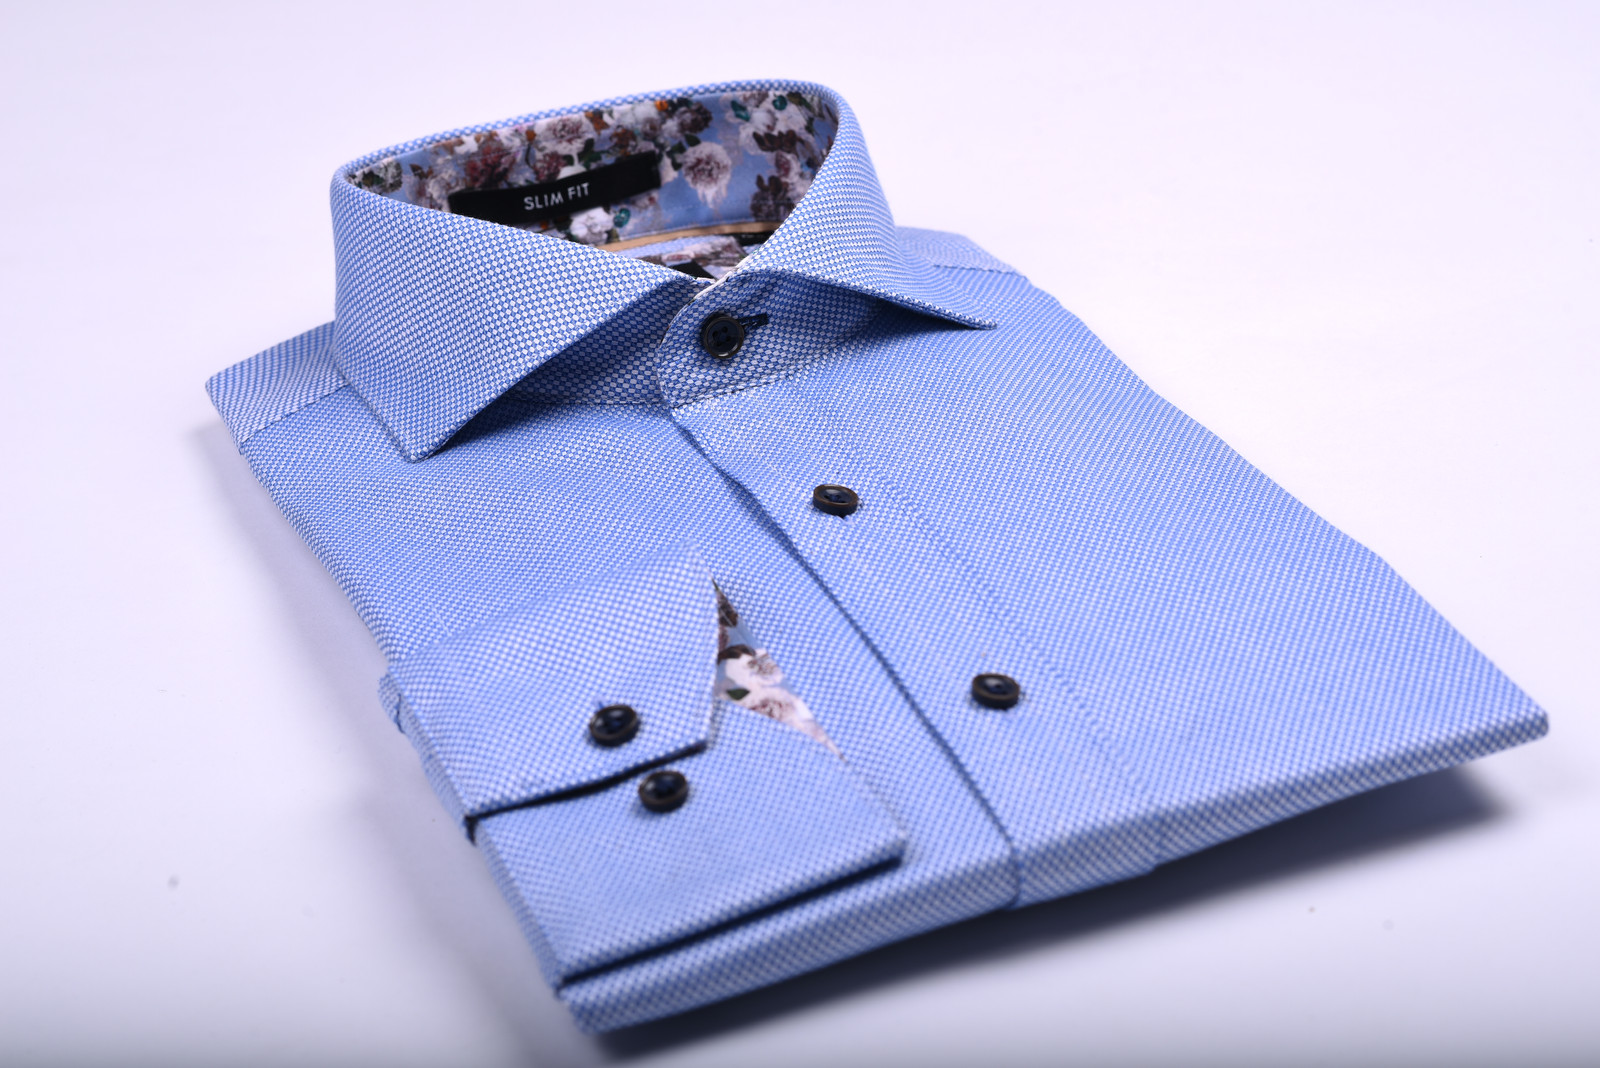 shirt fabric wholesale in bangalore cotton shirting fabric suppliers